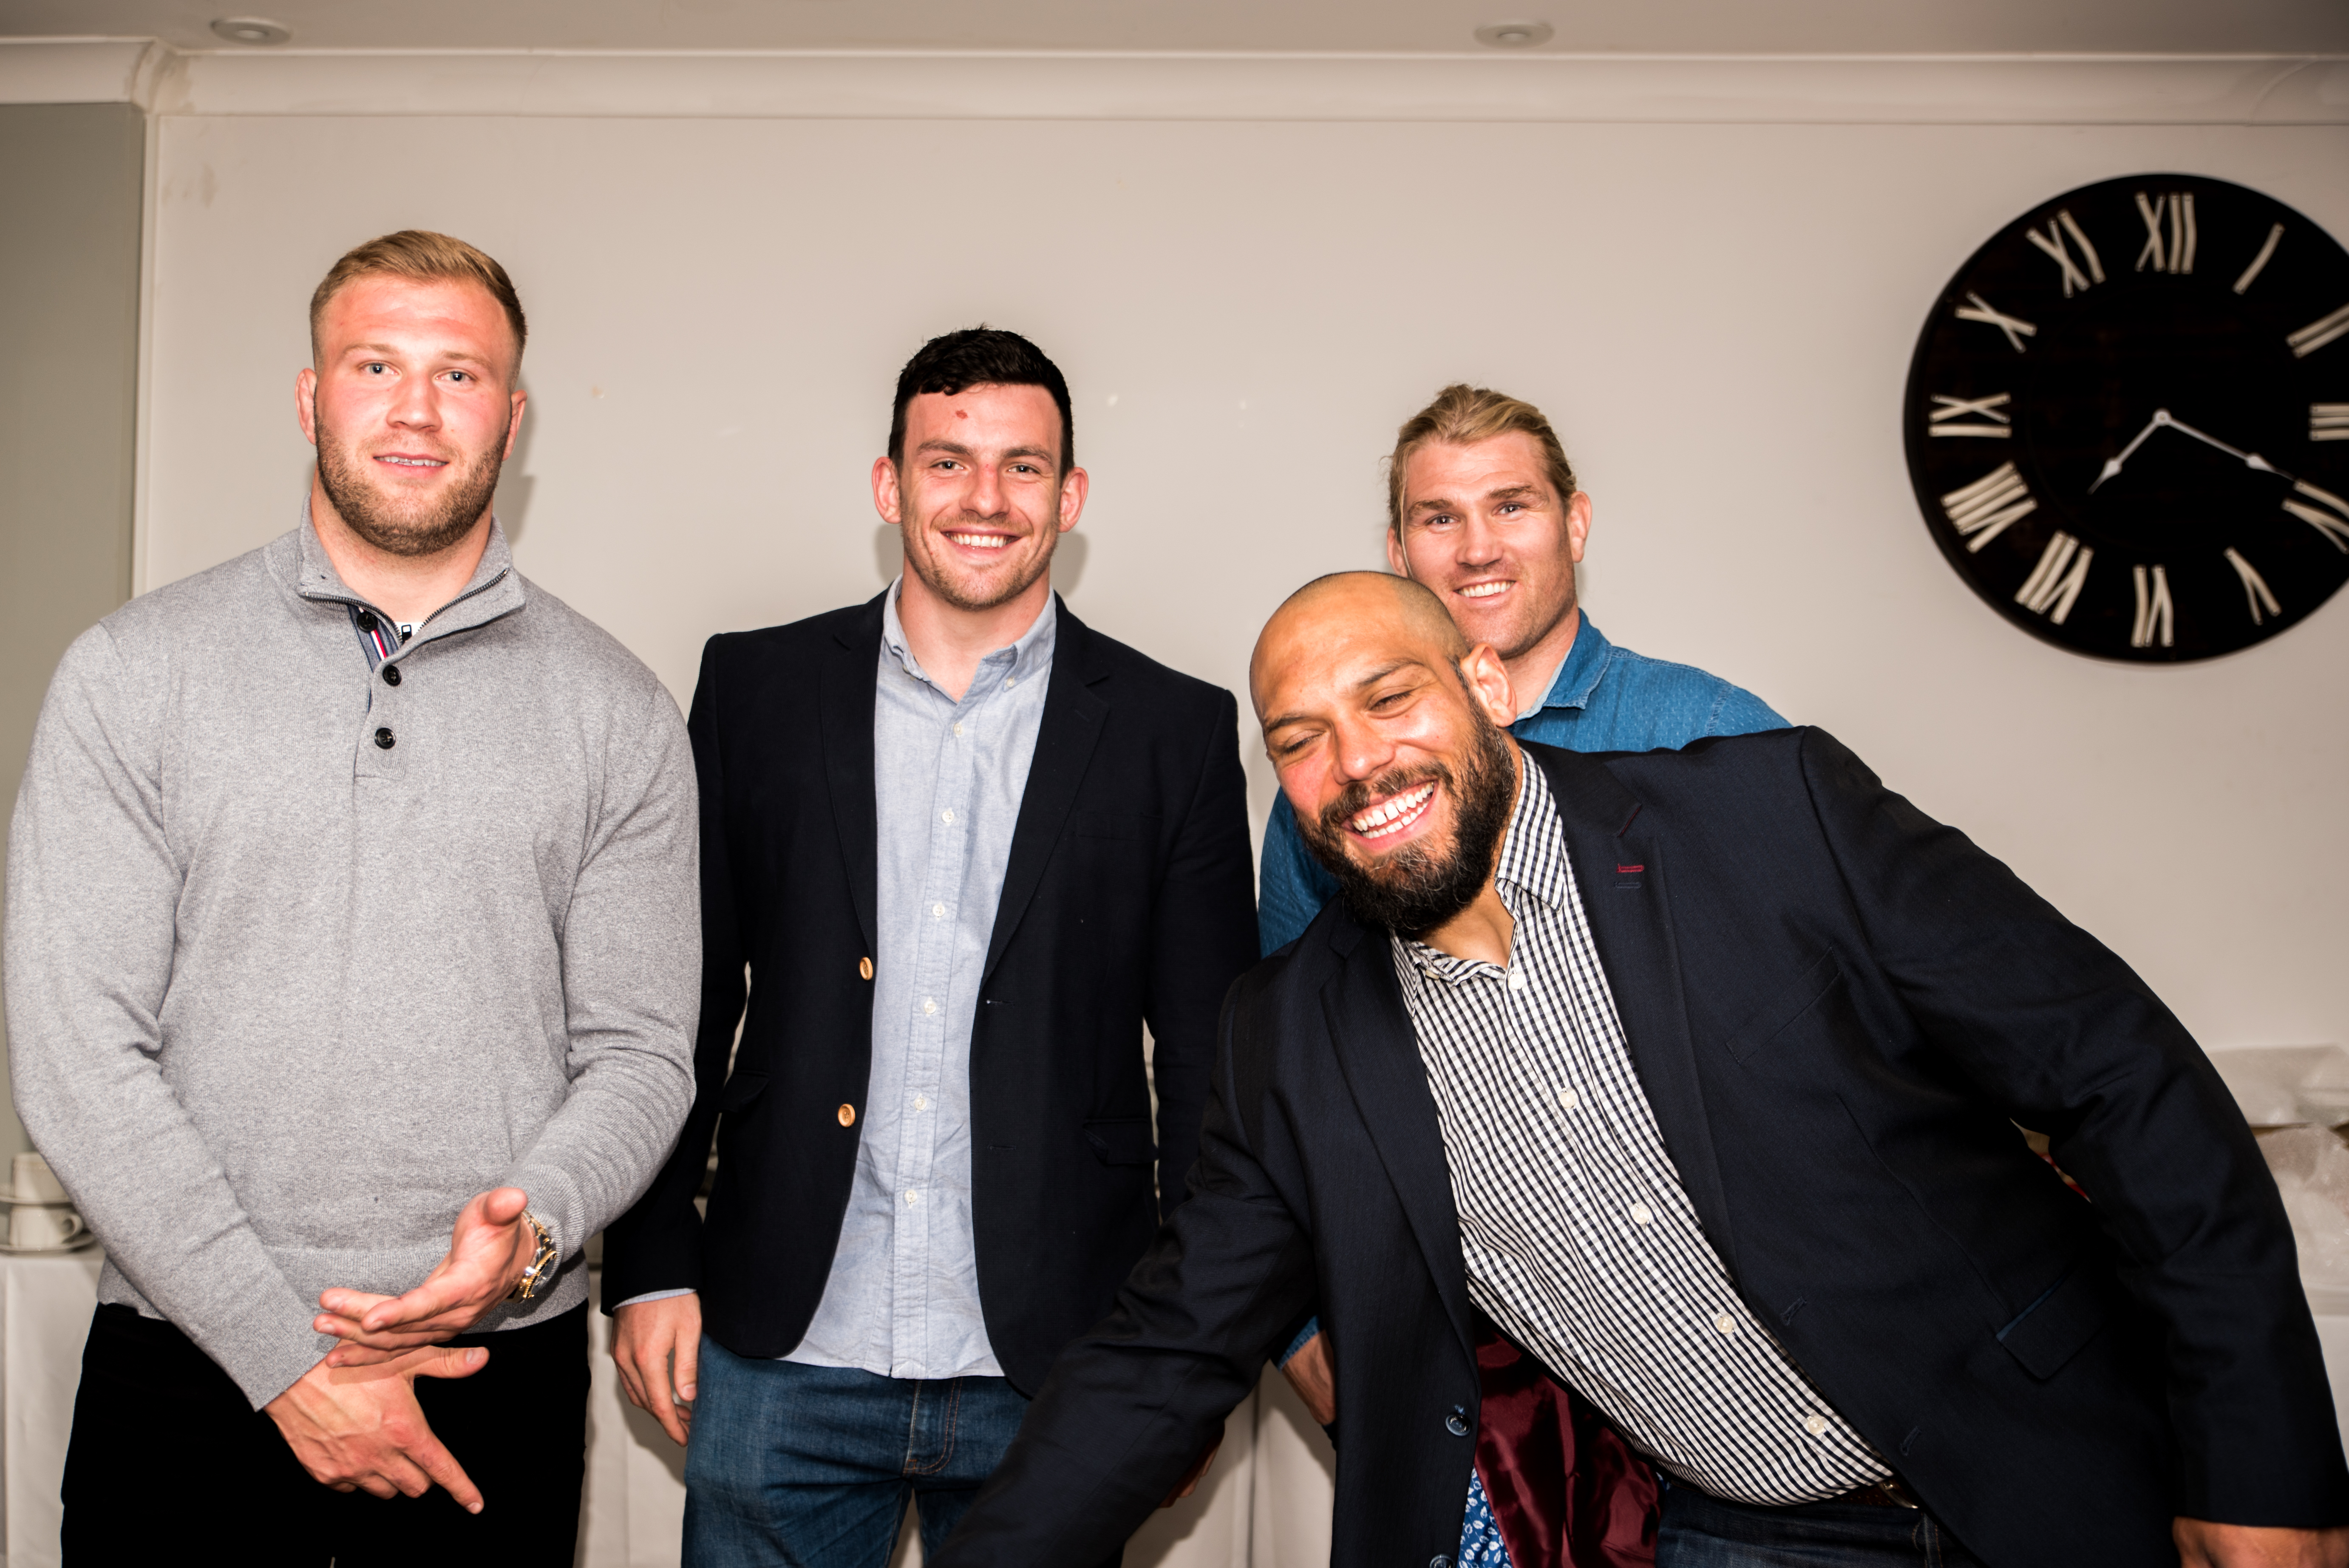 Aitch and Aitch Bee Richard Hibbard, Ross Moriarty, John Afoa, Matt Scott (11)